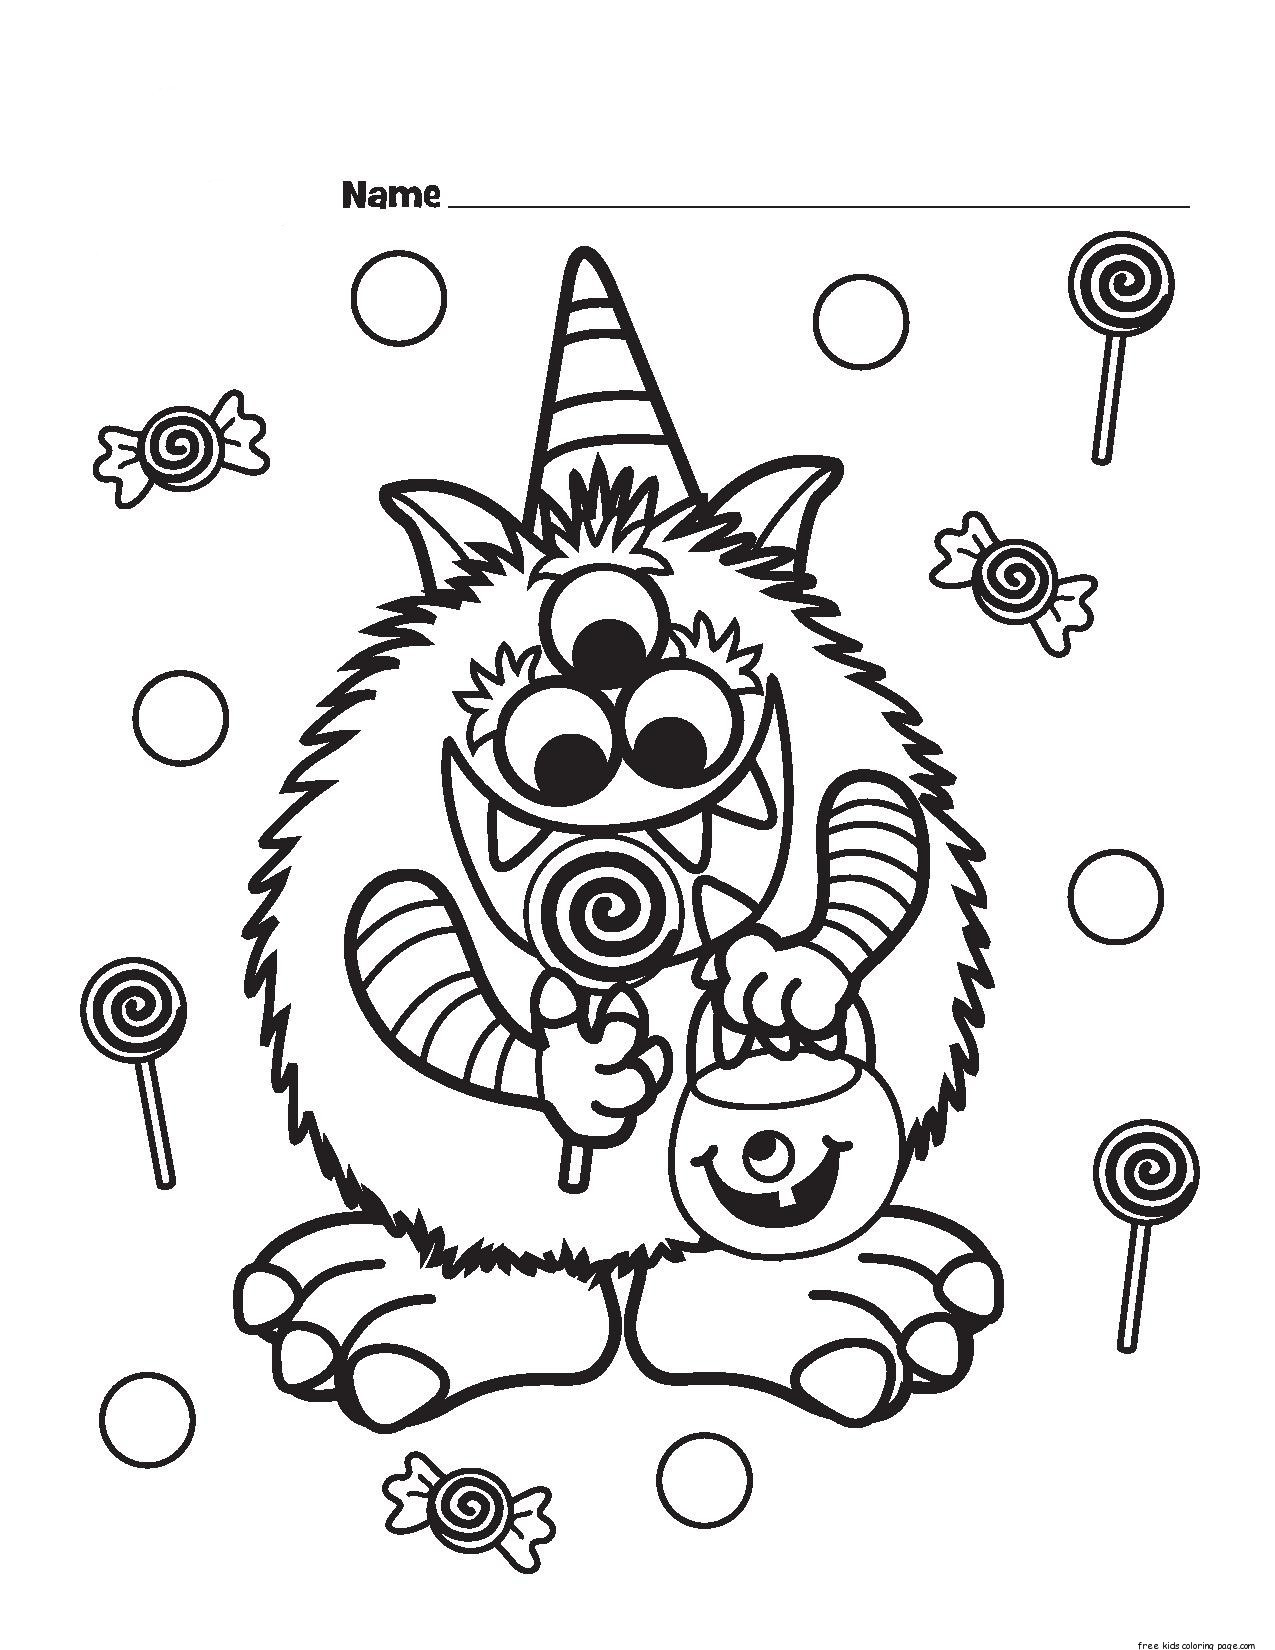 Best ideas about Free Coloring Sheets For Kids Halloween Themed . Save or Pin Halloween Candy Critter printabel Coloring Page Free Now.